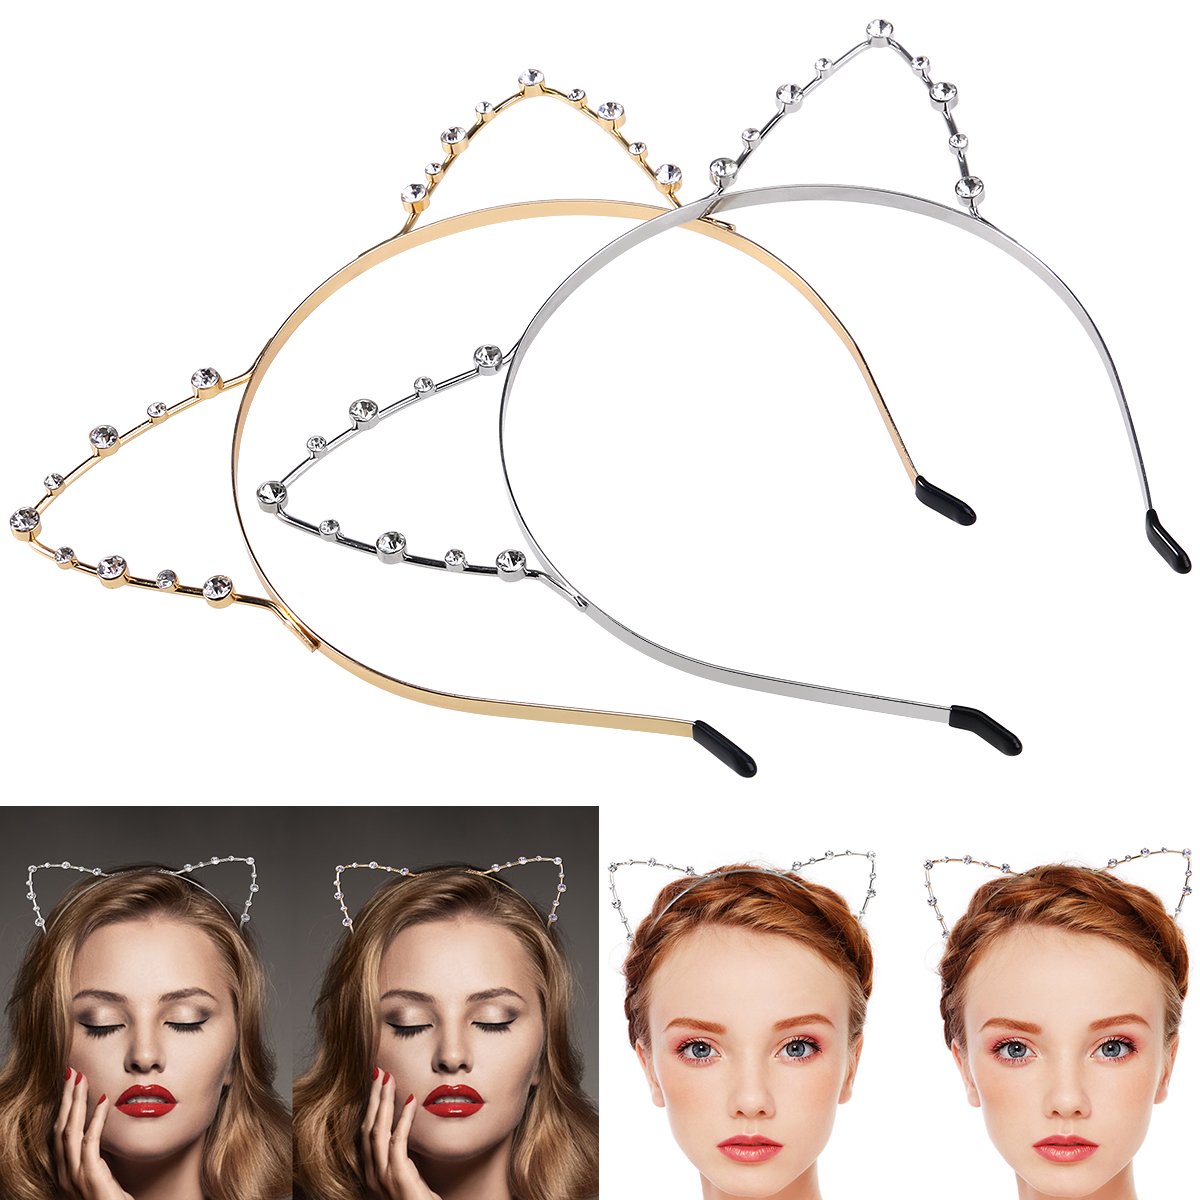 Etereauty Women's Cat Ear Headbands Rhinestone Crystal Hair Hoop Headpiece with Wrapped Ends for Costume Party (Silver & Gold), 2pcs Pack